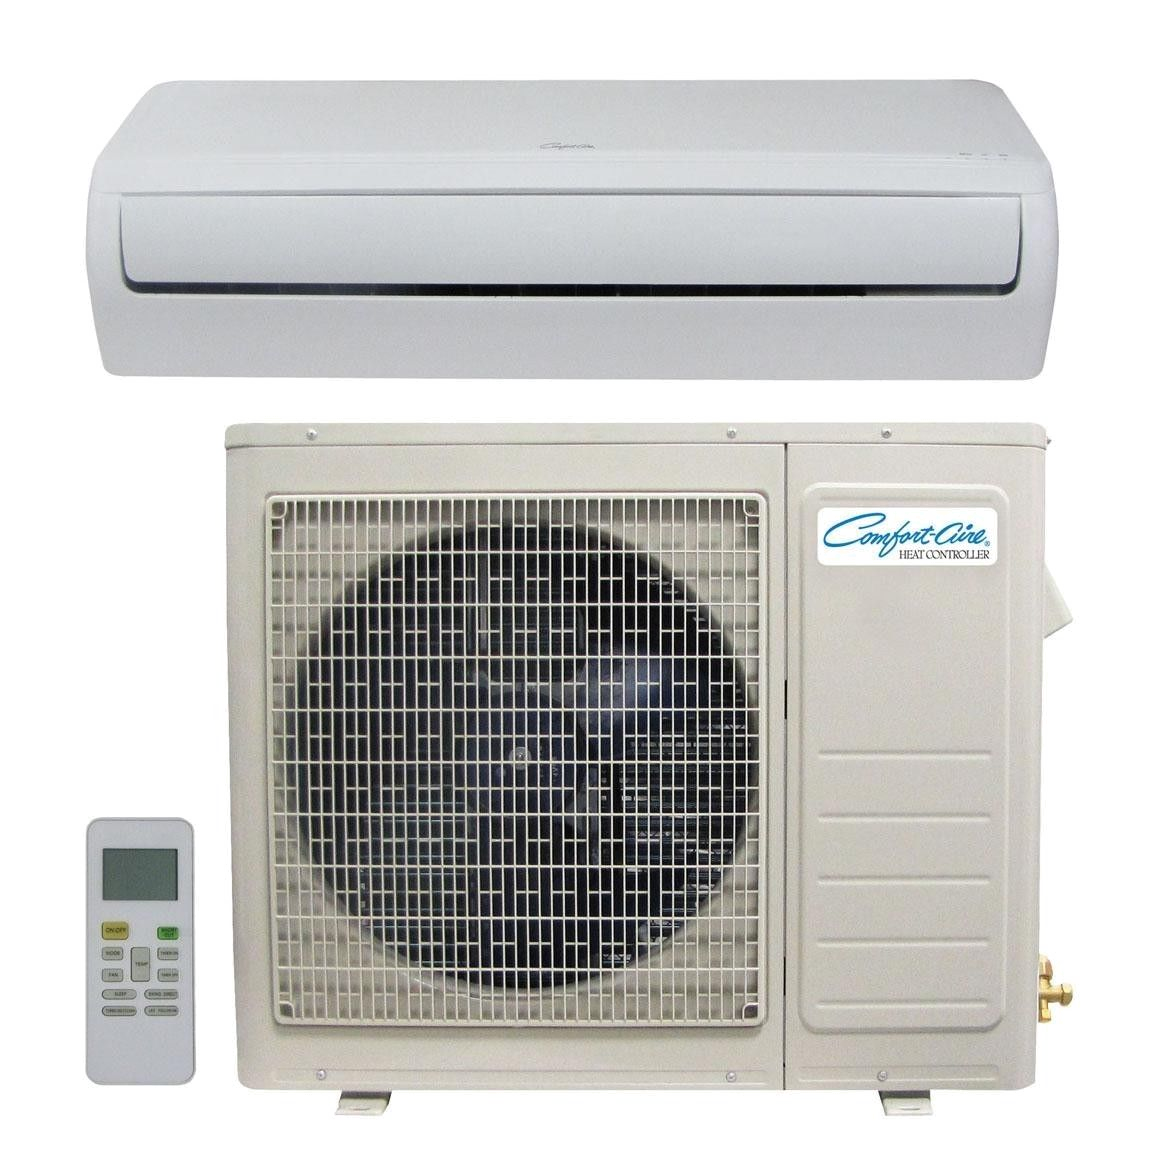 Comfort-Aire DVC18SD 18,000 BTU Ductless Single Zone Mini Split Air Conditioner DVC18SD